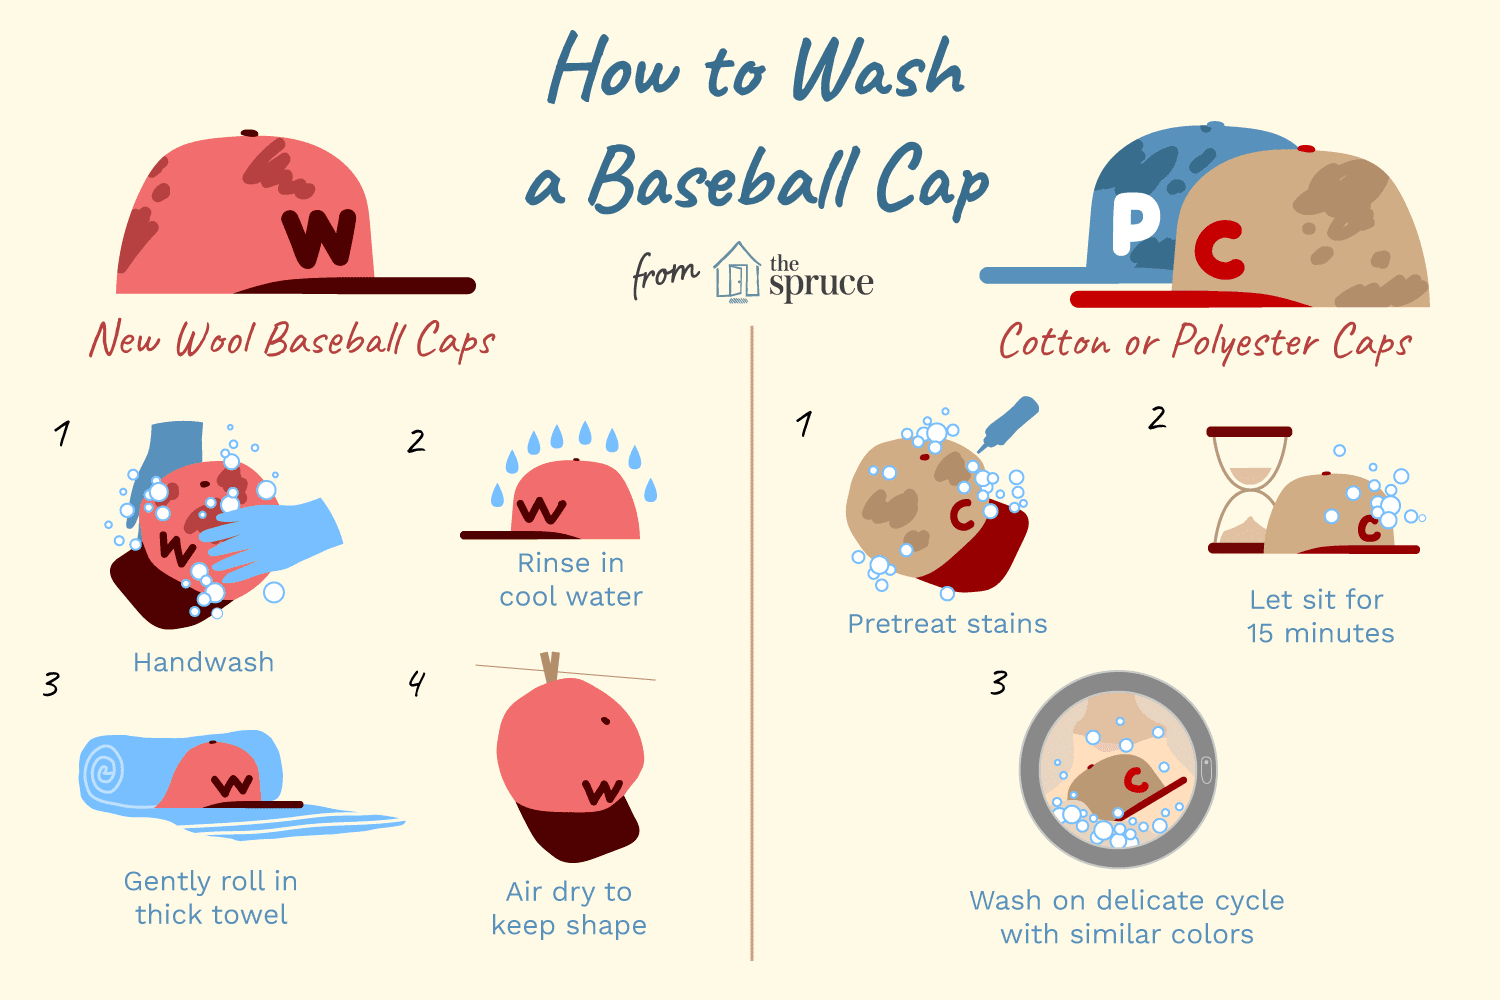 ade73fd9fd6 How to Wash Every Type of Baseball Cap